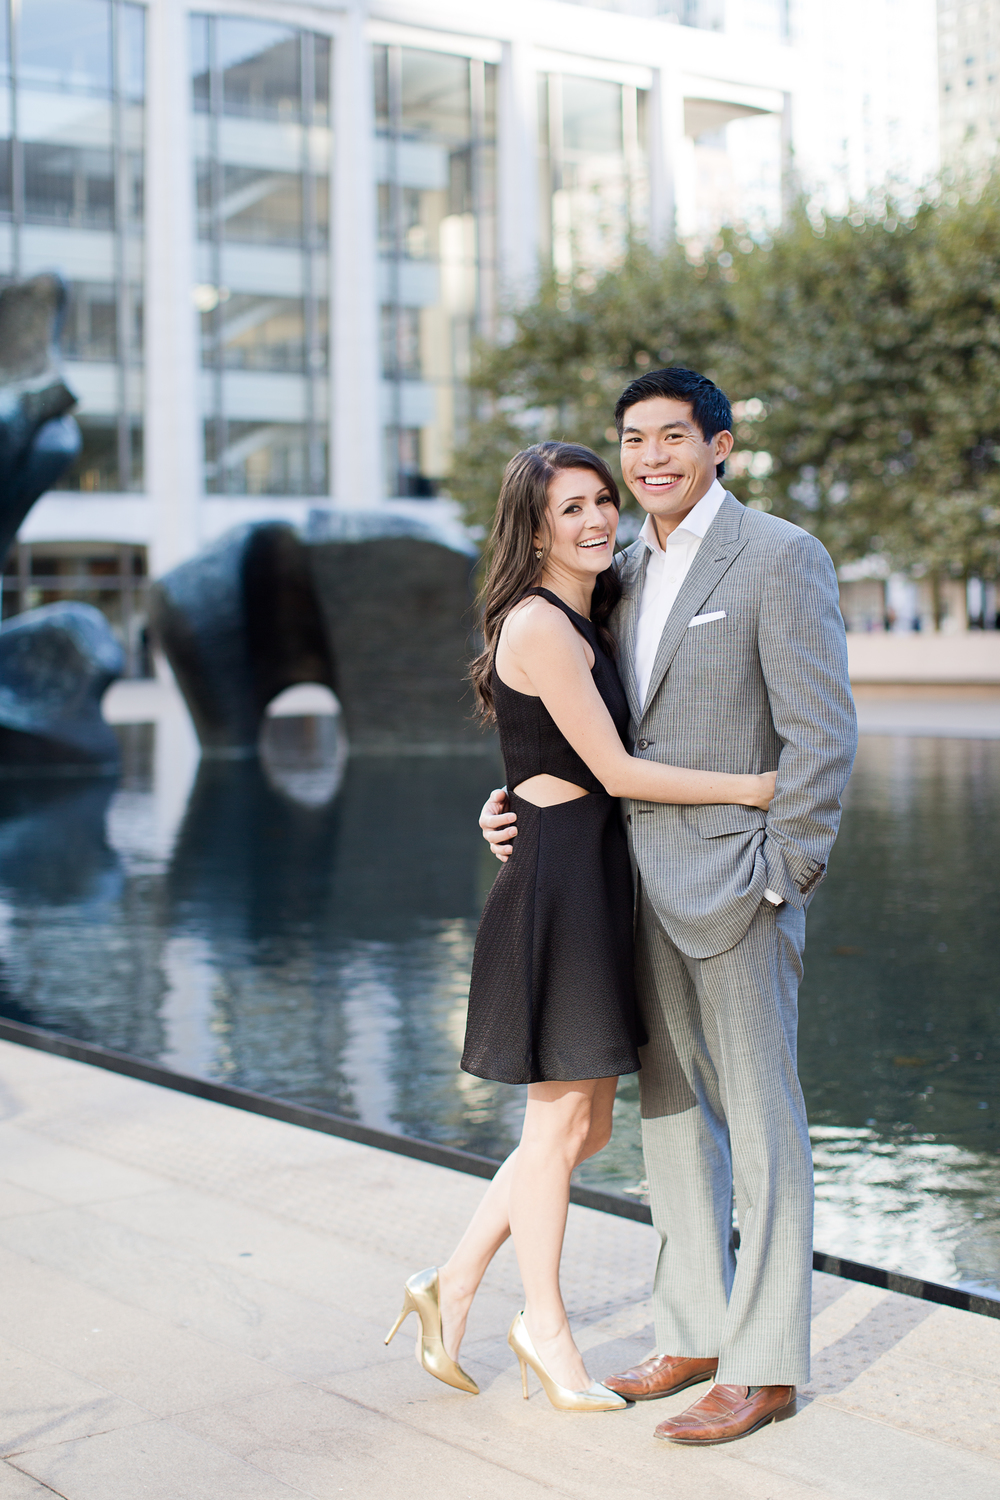 Melissa Kruse Photography - Emily + Kevin Engagement Session-24.jpg